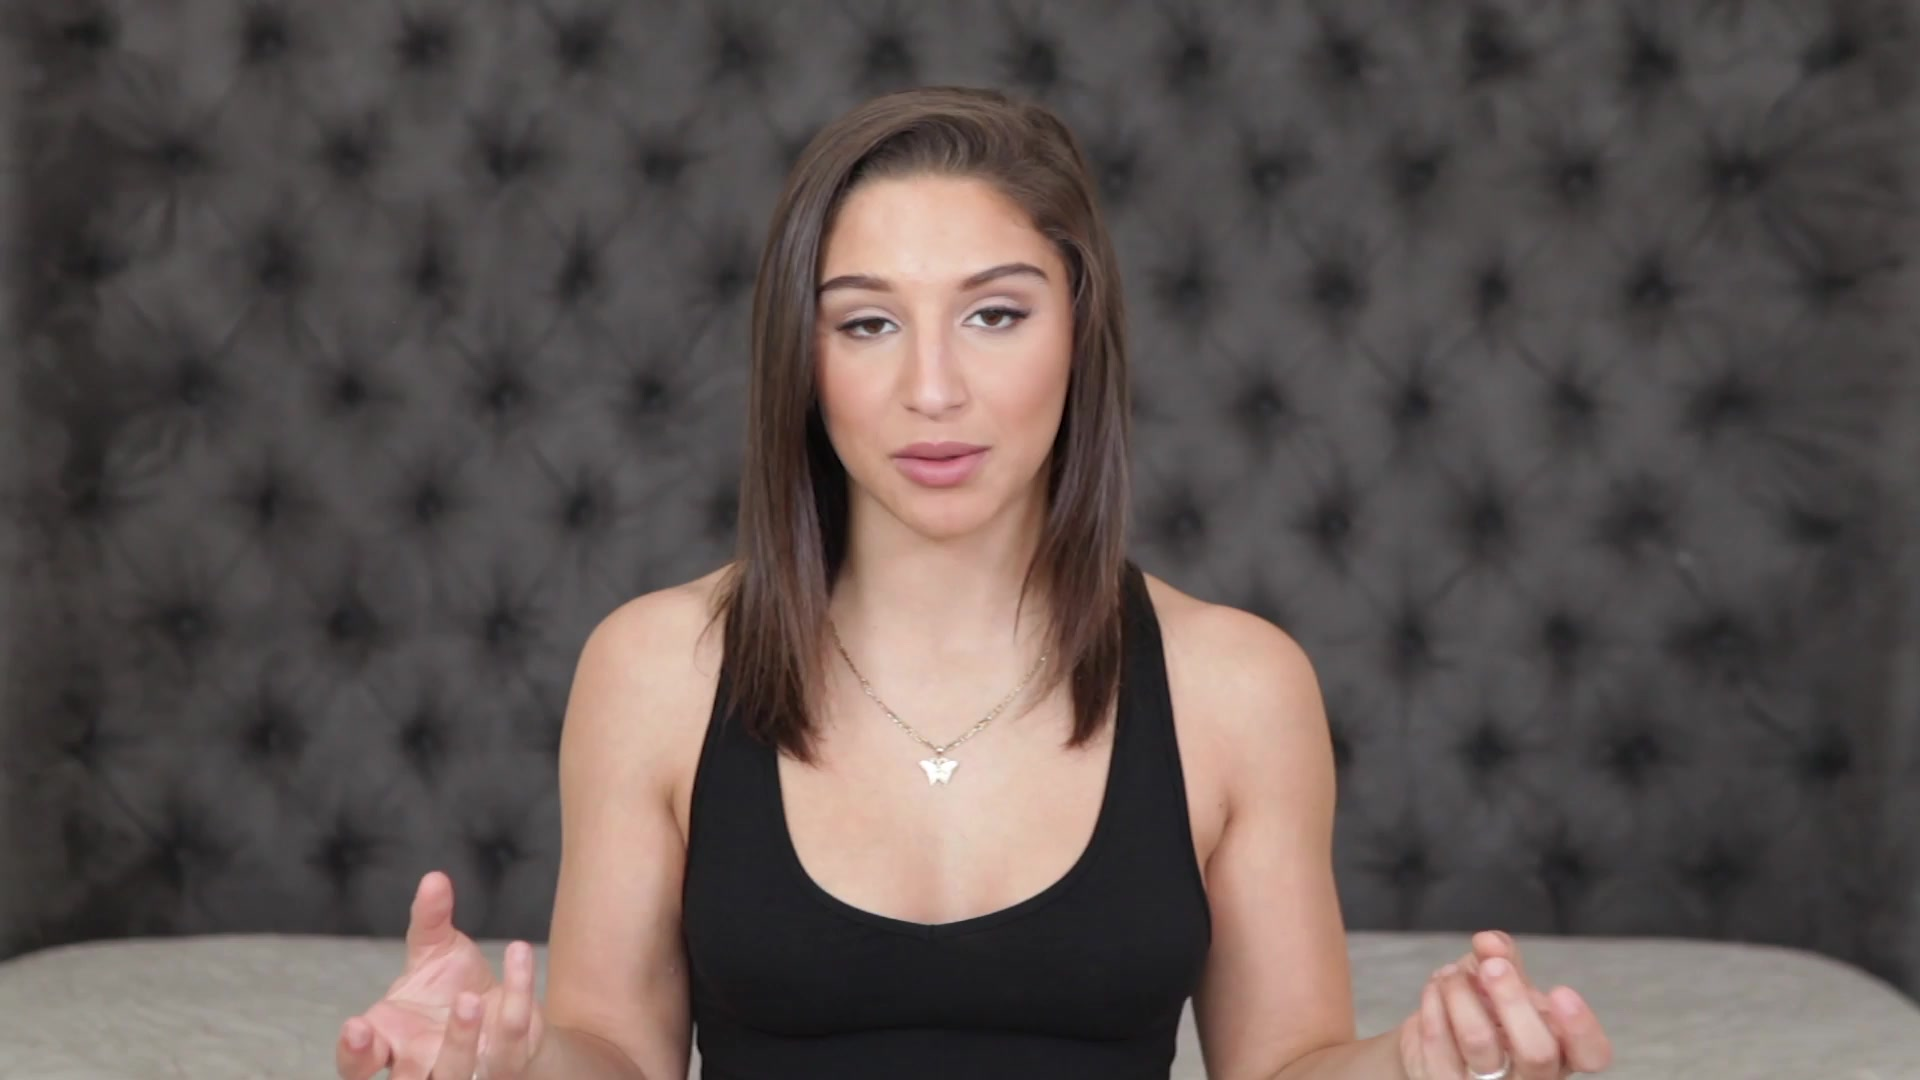 Scene with Abella Danger - image 18 out of 20